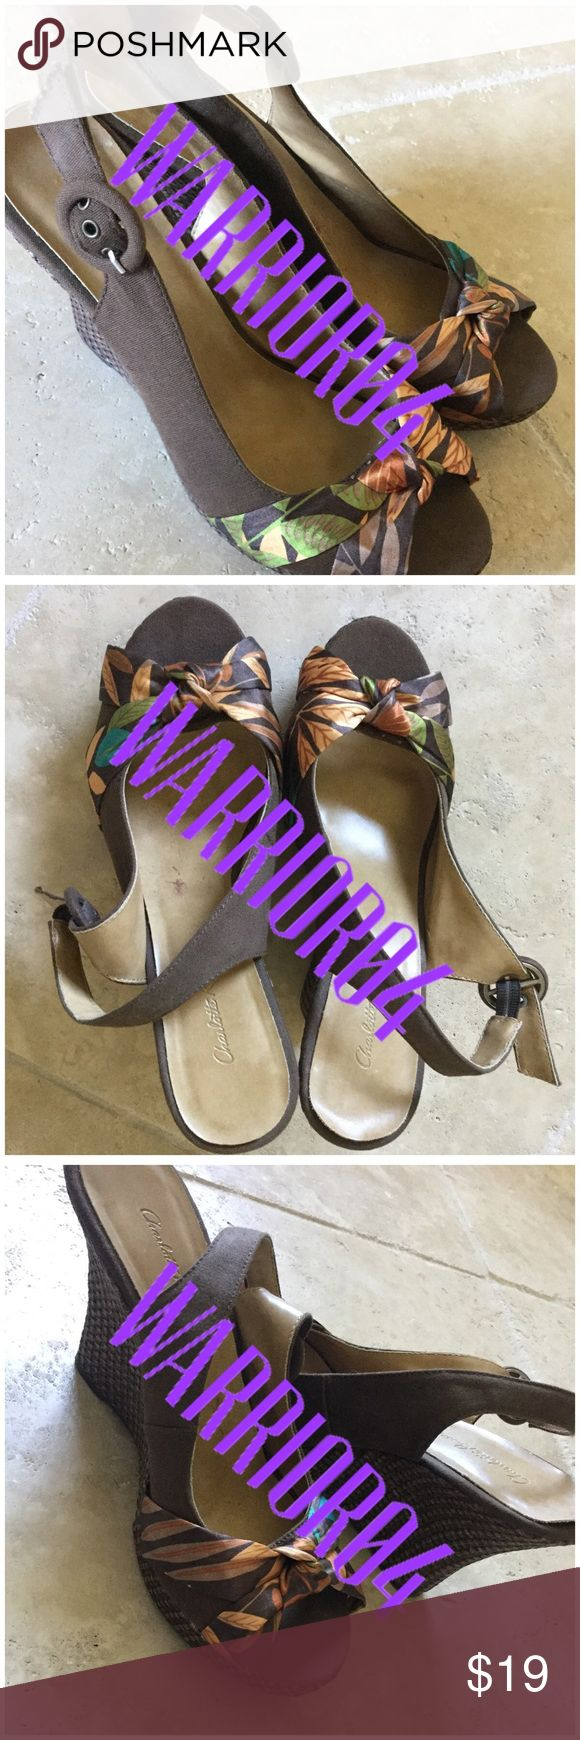 Charlotte Russe Floral Brown Bow Wedges Size 8 Charlotte Russe Floral Brown Bow Wedges Size 8  gently used condition  these are my sisters and they do not fit me. Charlotte Russe Shoes Wedges